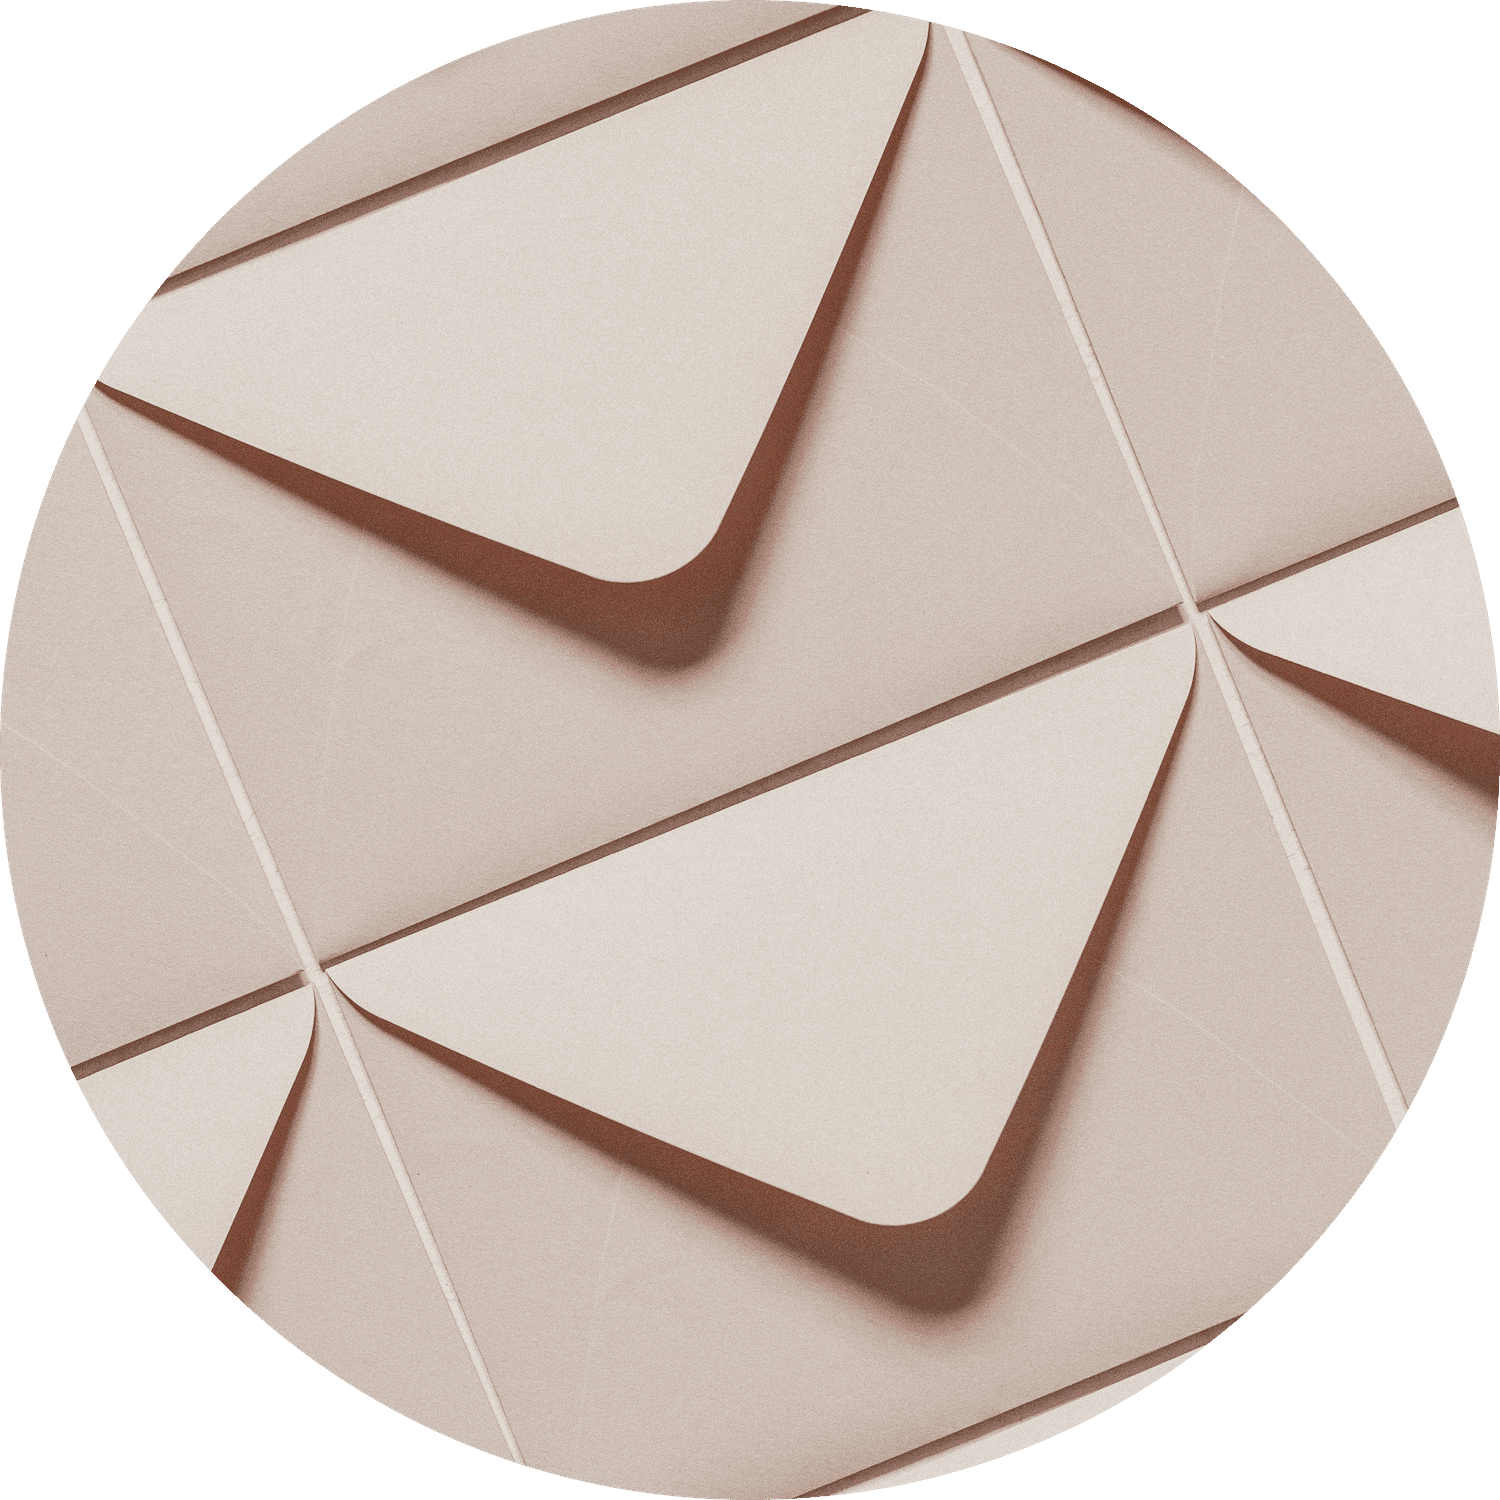 Envelopes | IT Storeroom